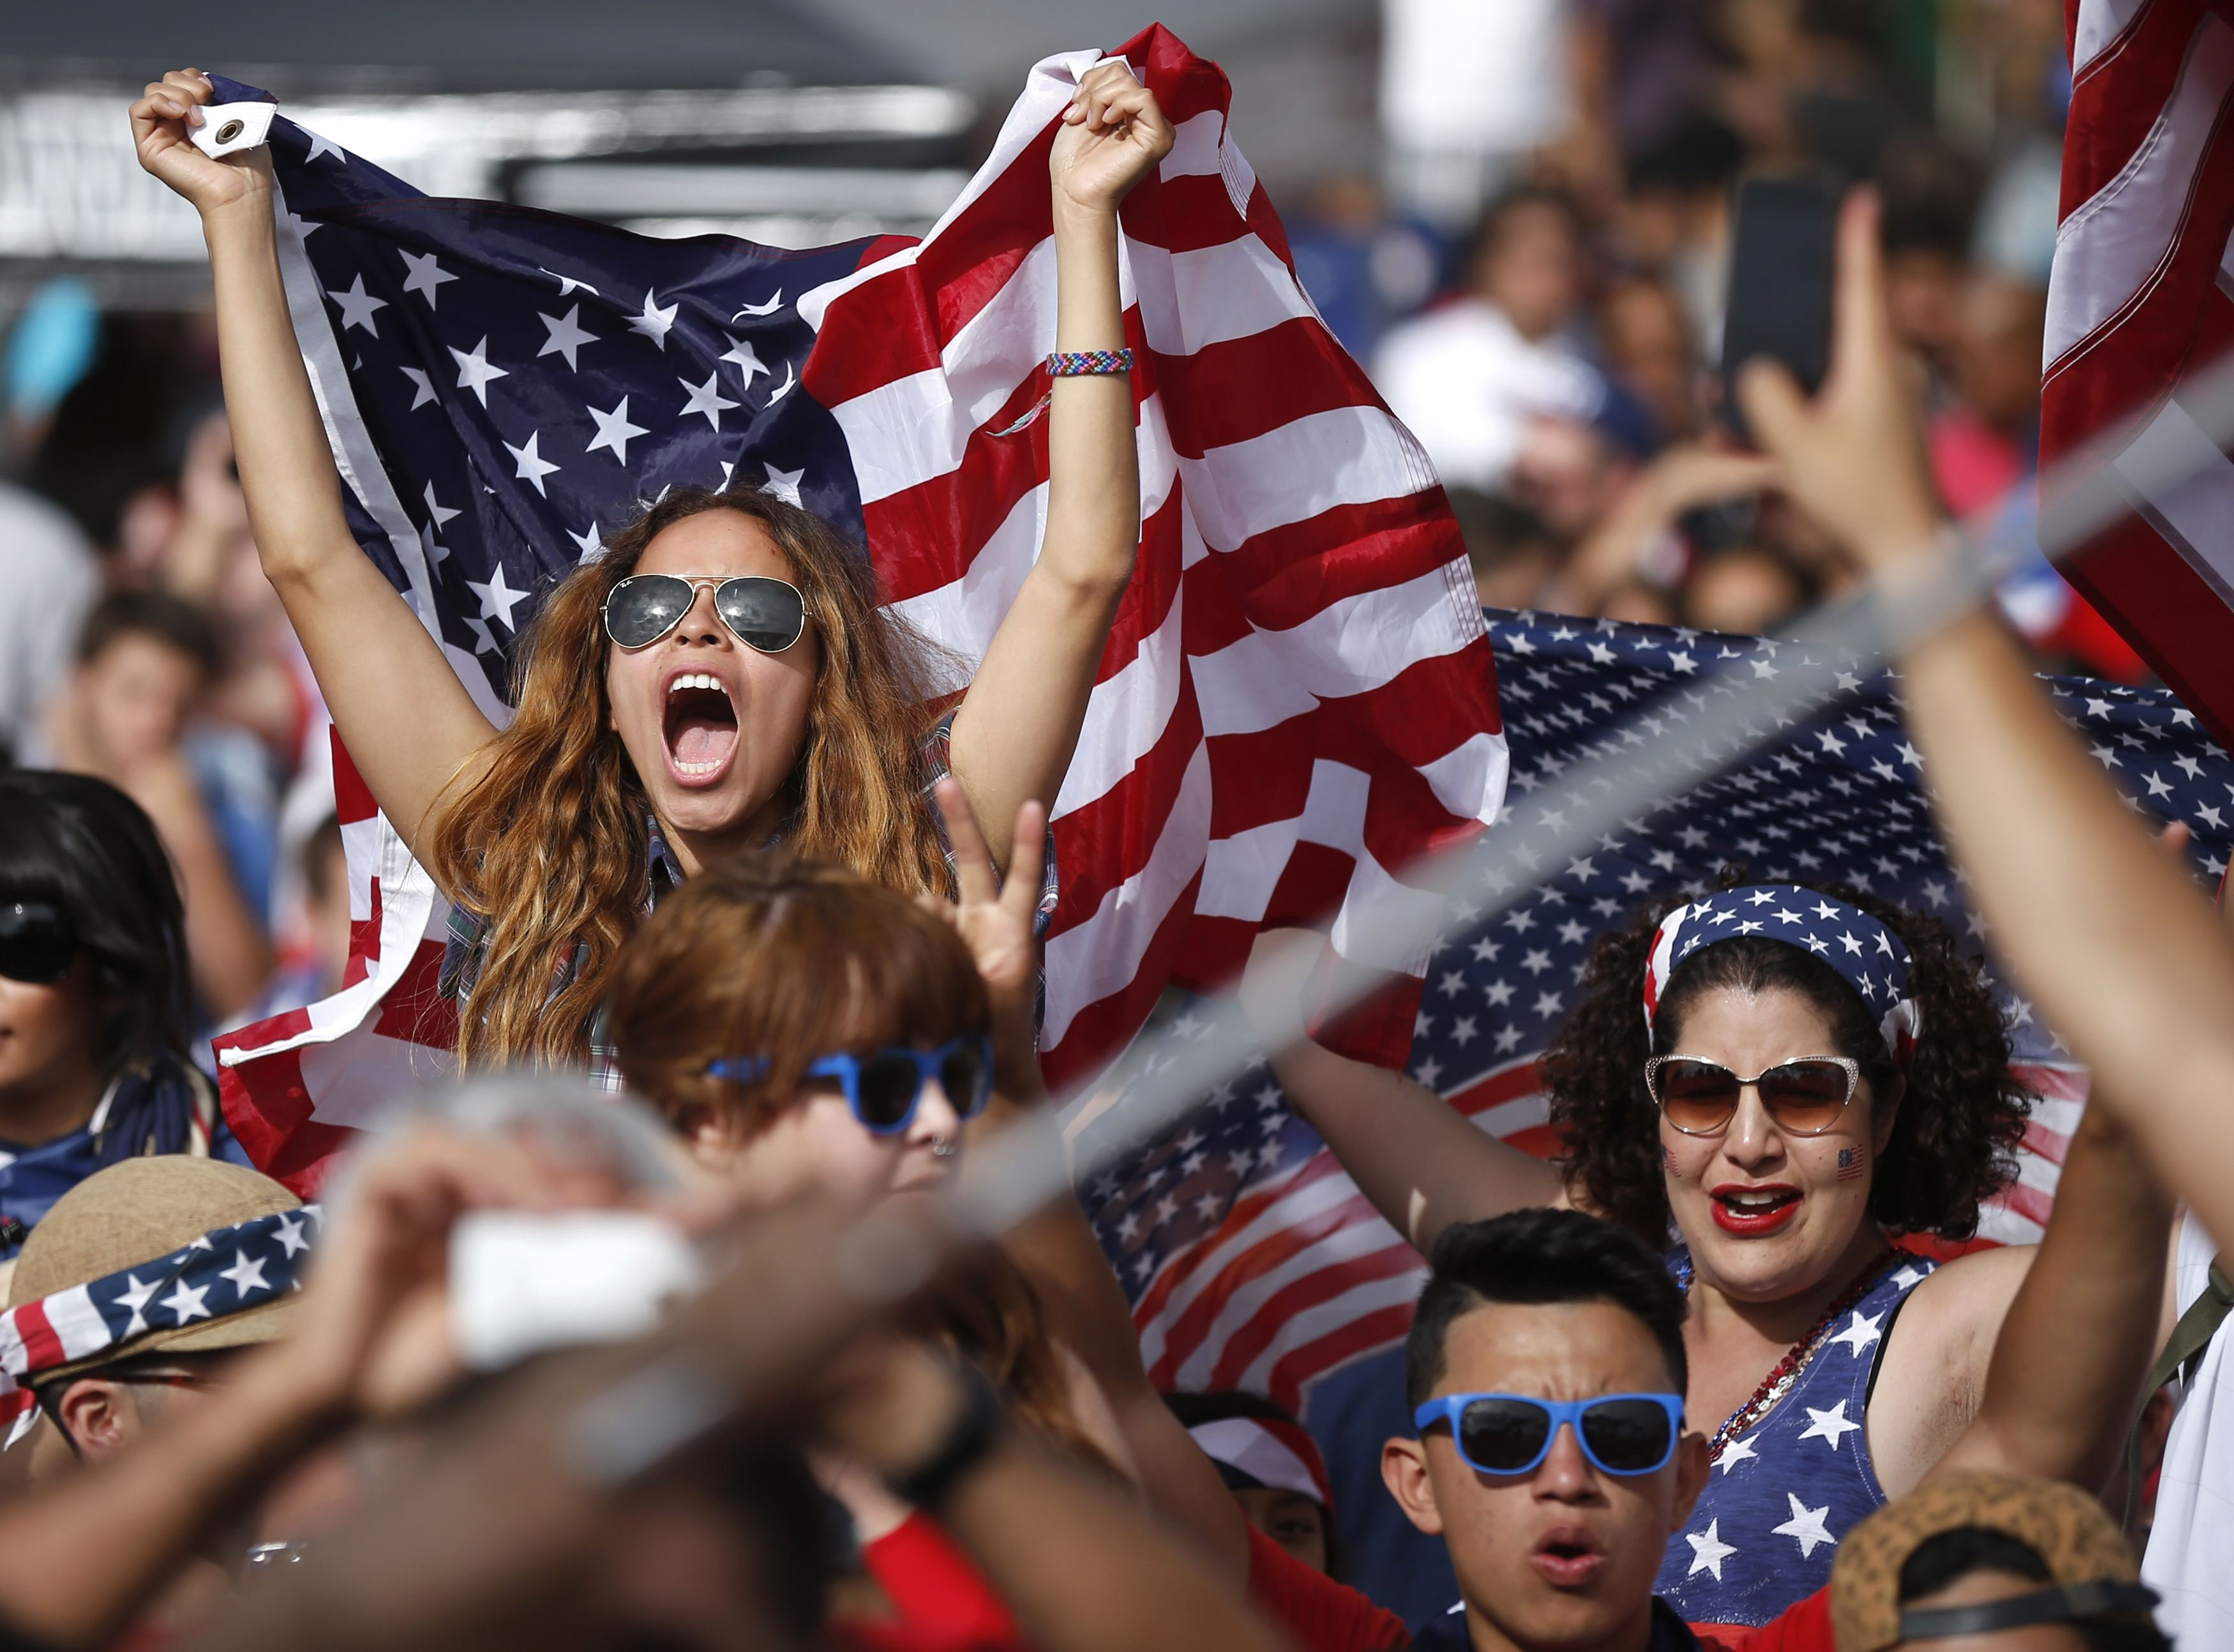 Fans cheer during the 2014 World Cup Group G soccer match between Ghana and the U.S. at a viewing party in Hermosa Beach, California on June 16, 2014.